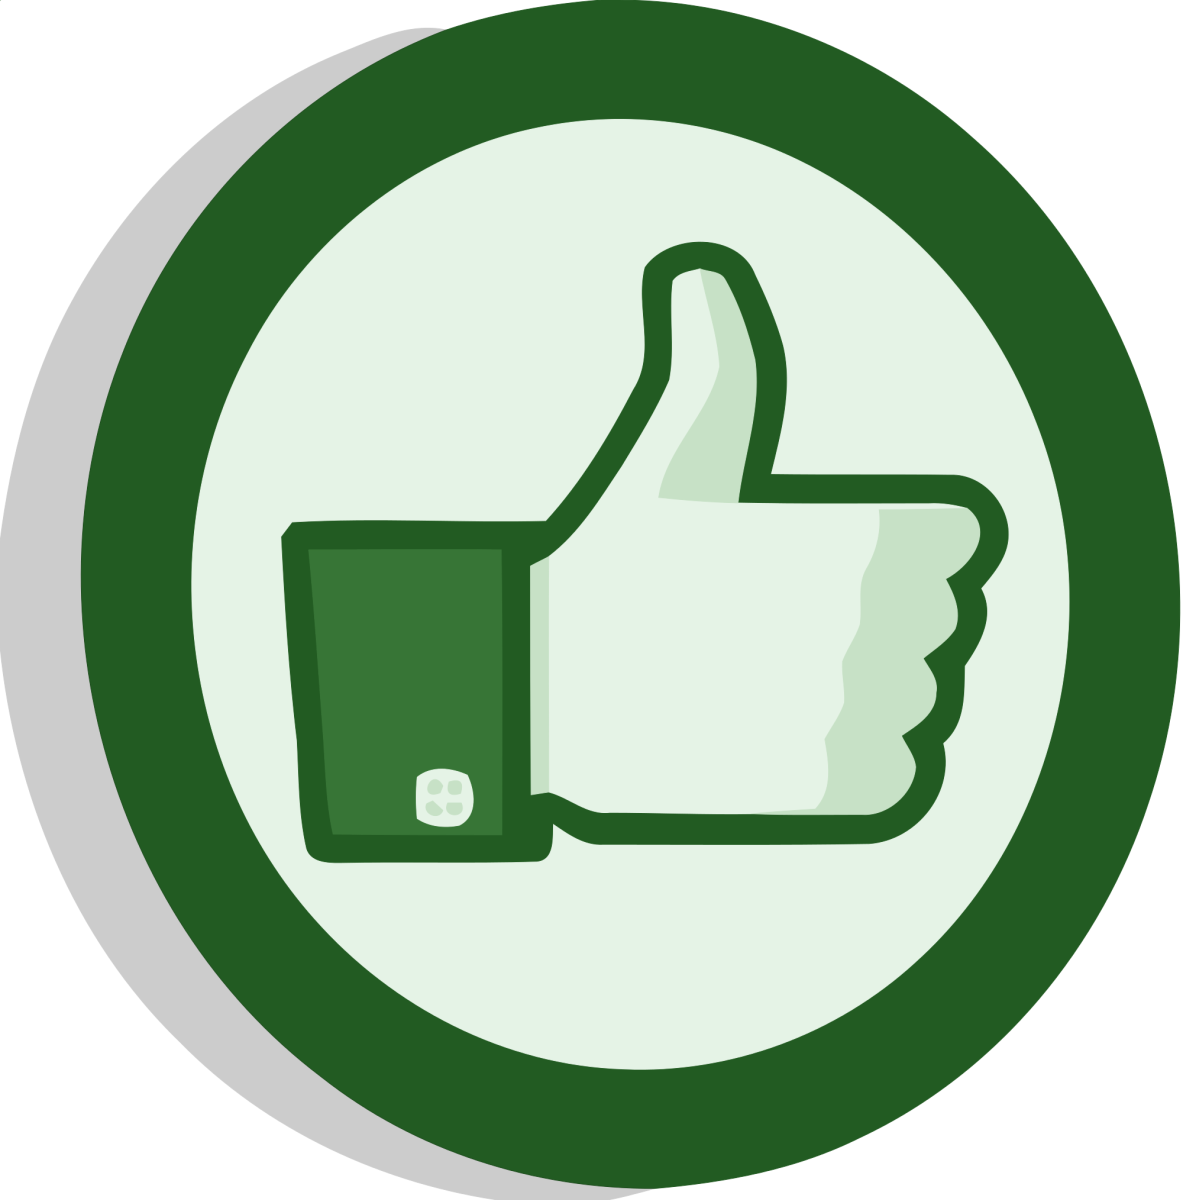 Download Like Png Clipart Social Media Like Button - Like ...